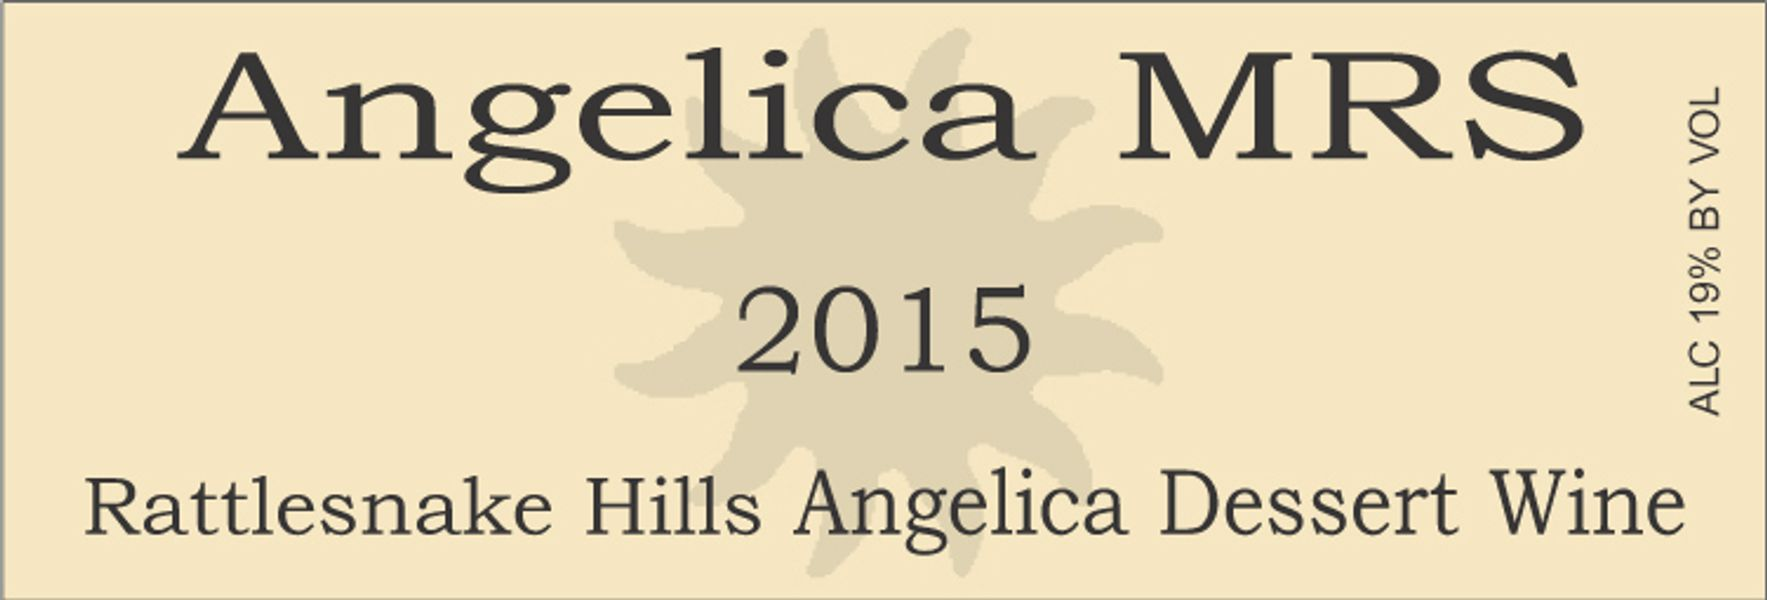 2015 Angelica MRS